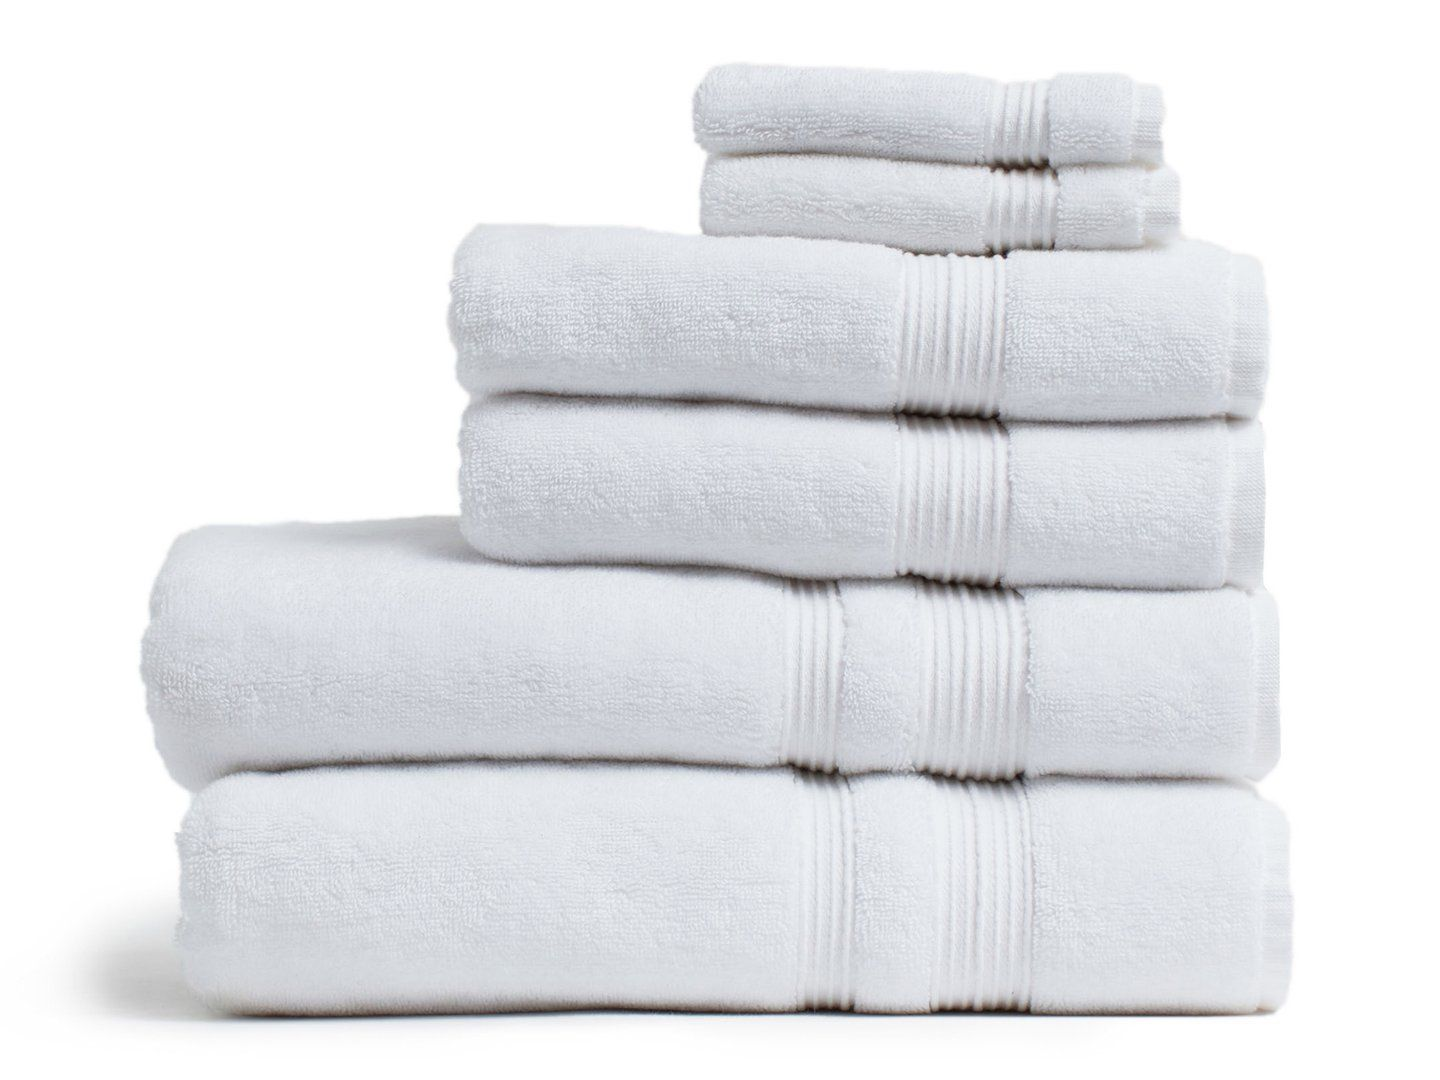 Classic Towels White Towels Towel Bath Towels